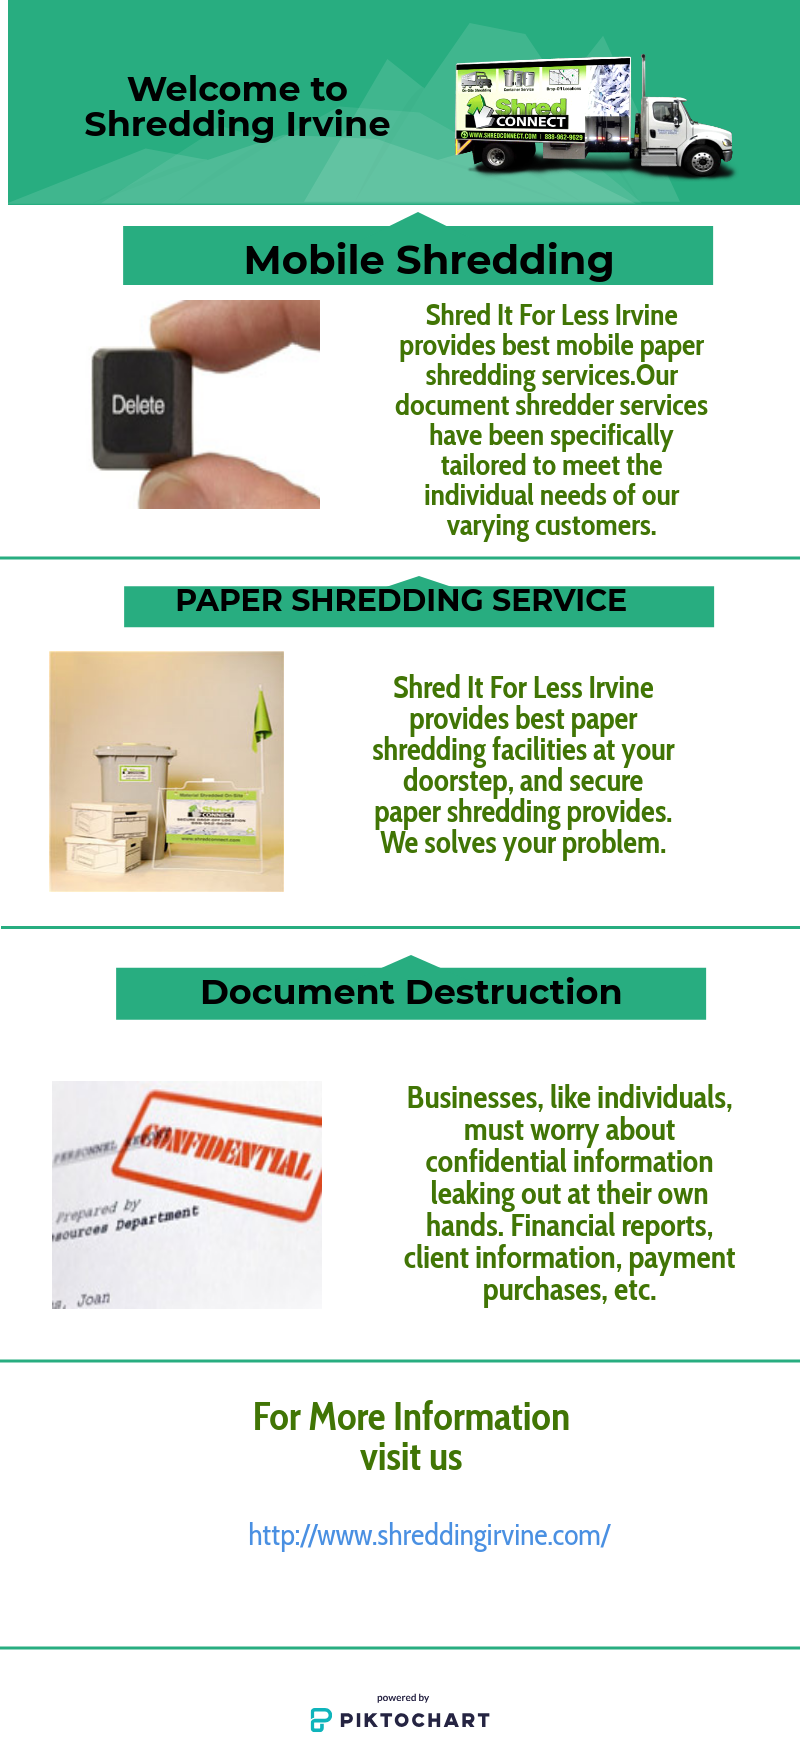 Are you looking for Mobile Shred Companies? Shred It For Less Irvine